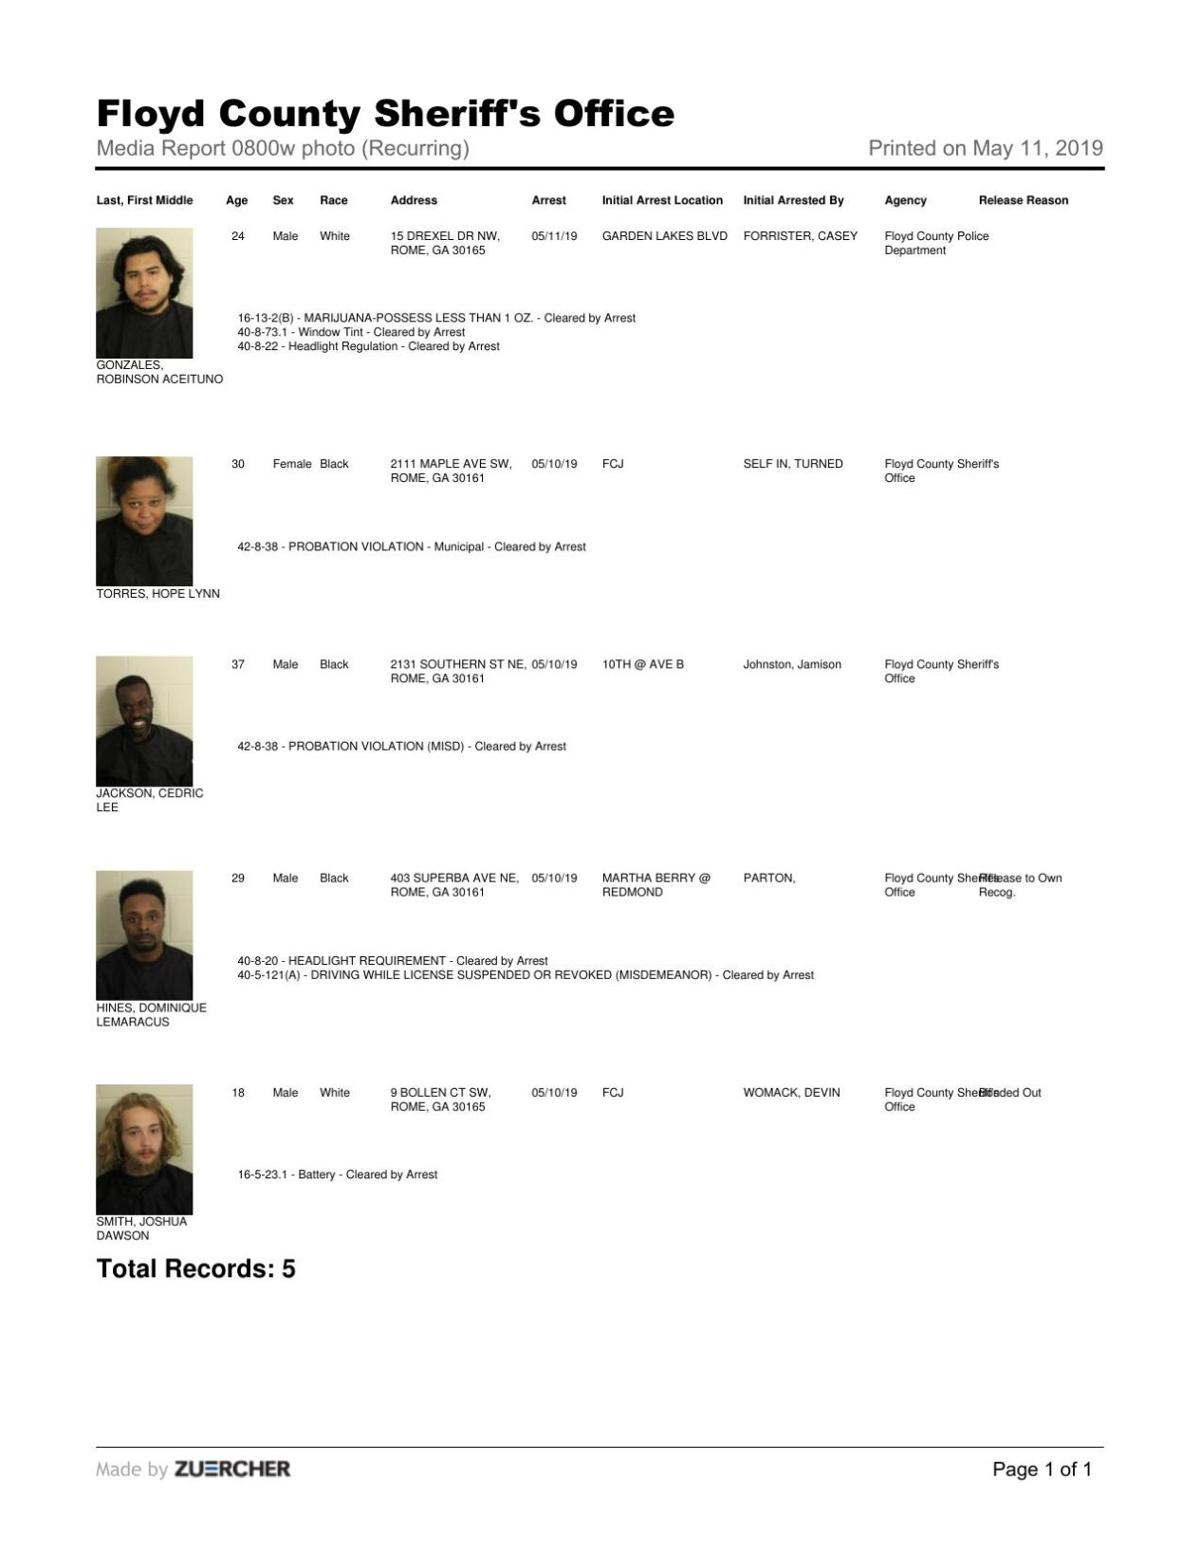 Jail report for 8 a.m. Saturday May 11